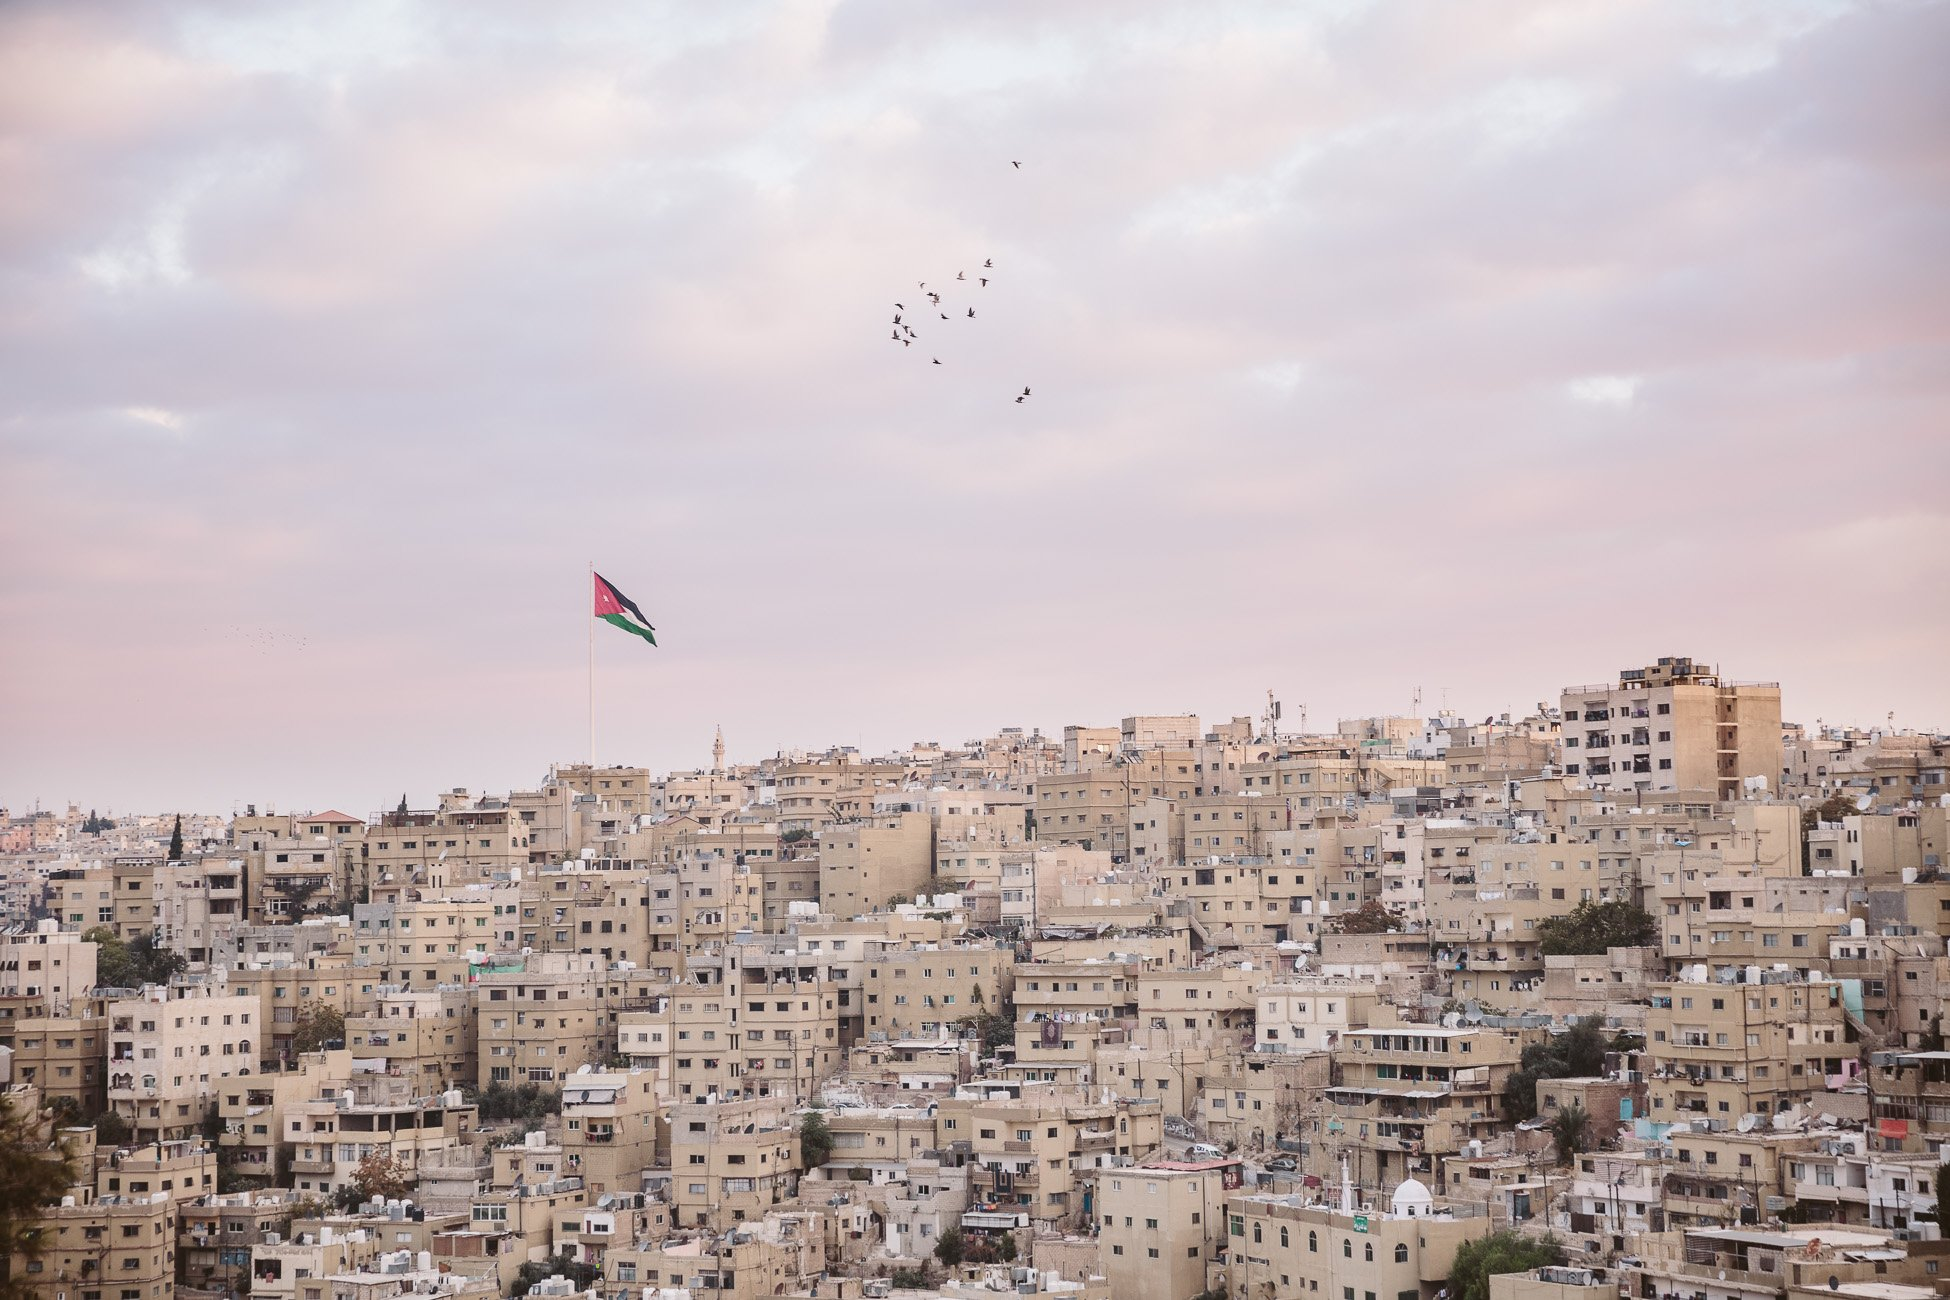 Amman Jordan by Ladyvenom for thetravelblog.at